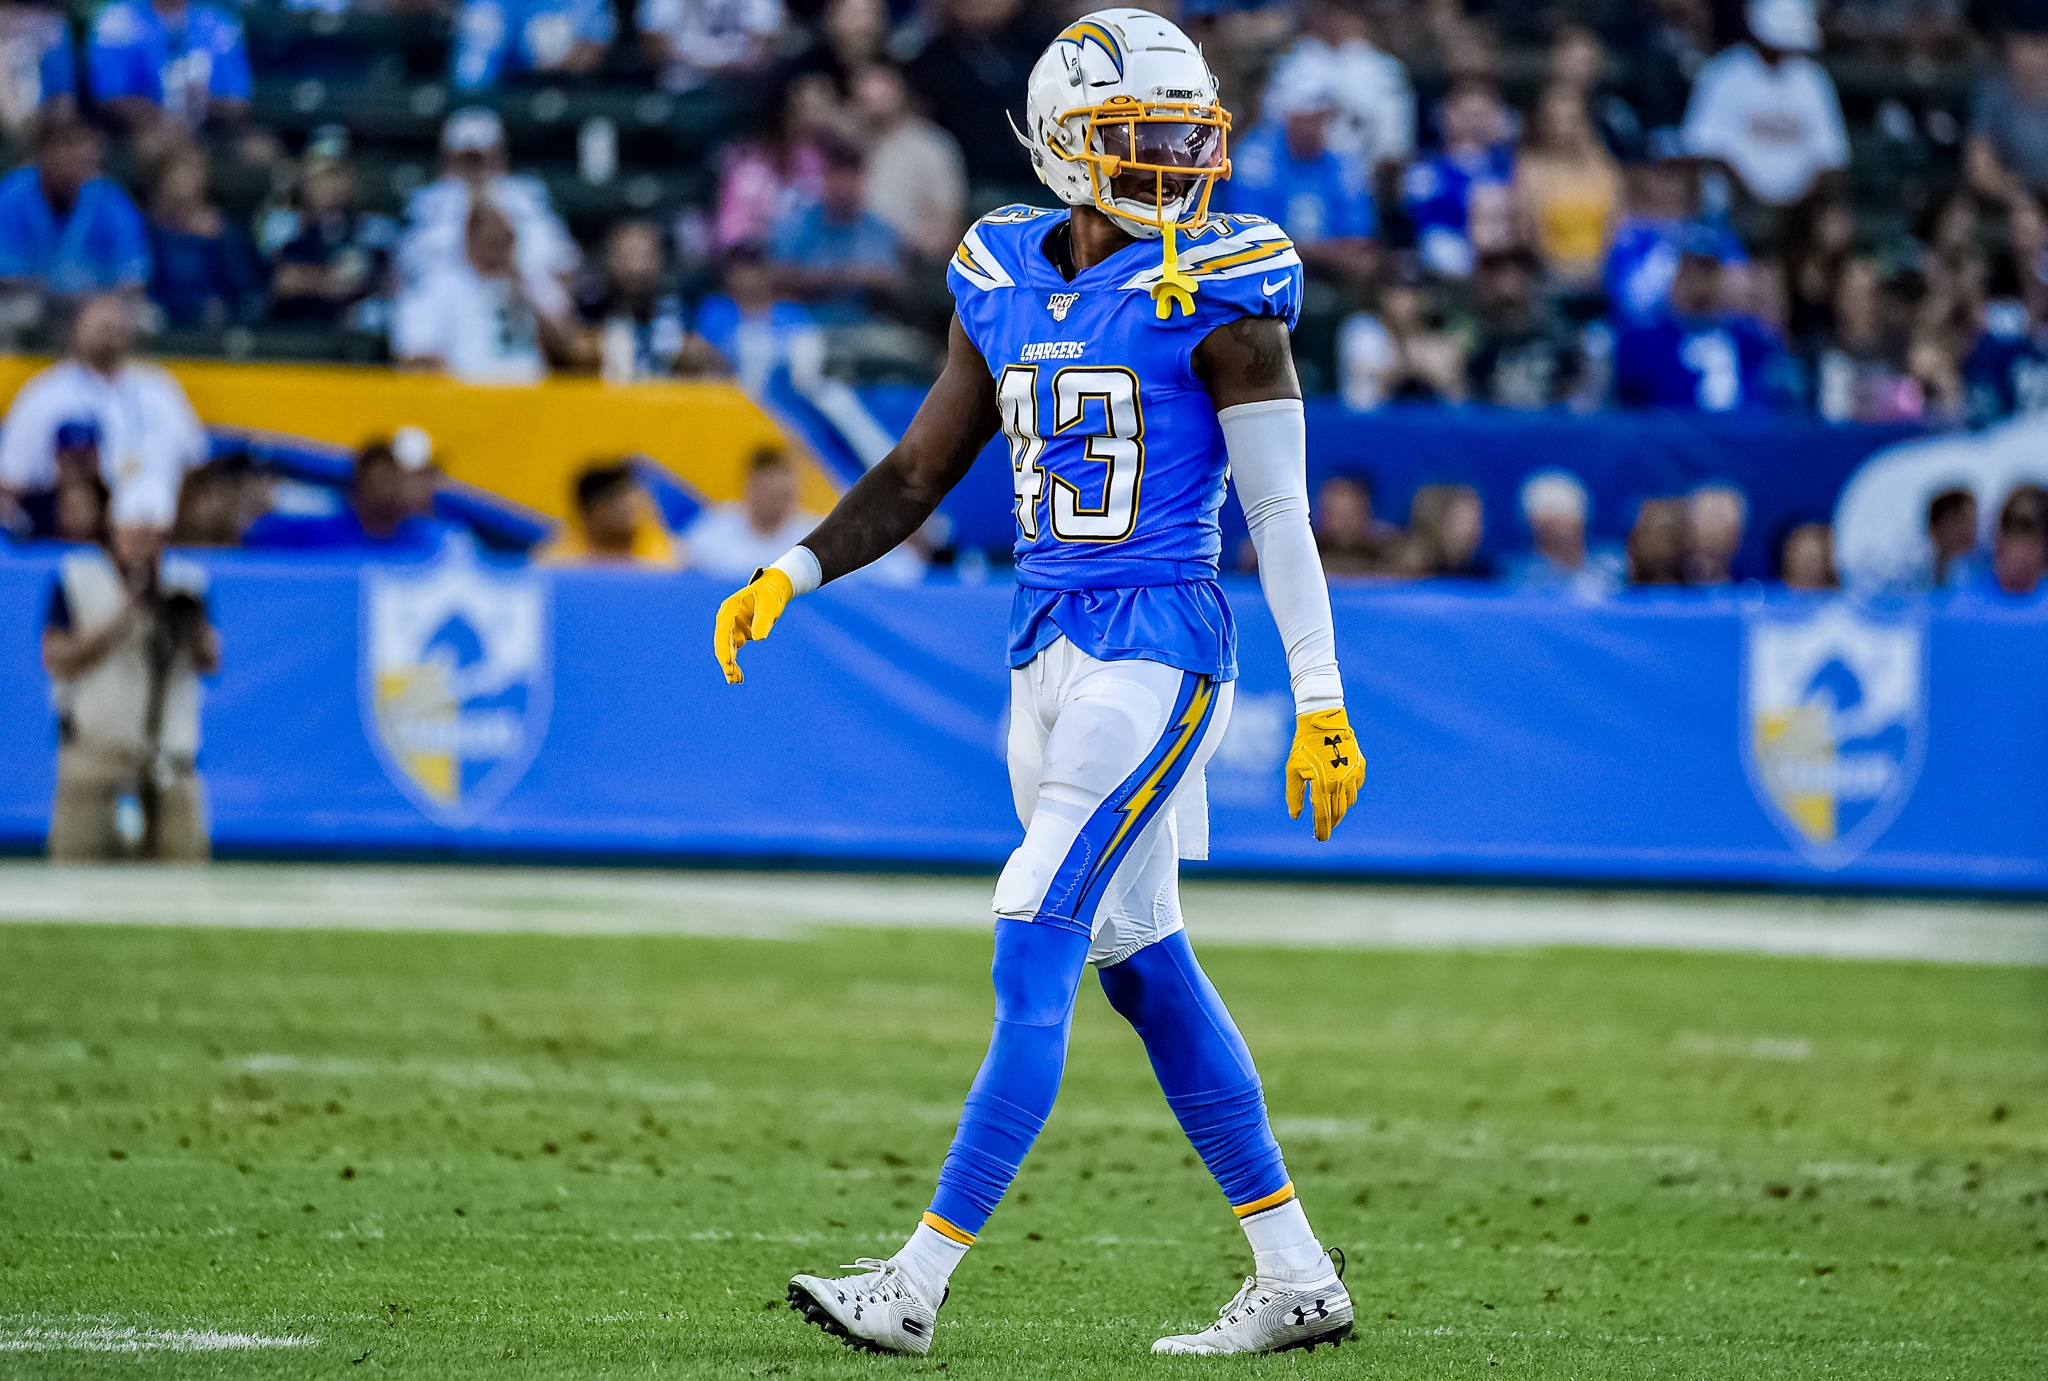 © Mark Hammond/News4usonline - Aug. 24, 2019 - Seahawks vs. Chargers - Chargers defensive back Michael Davis (43) surveying the field